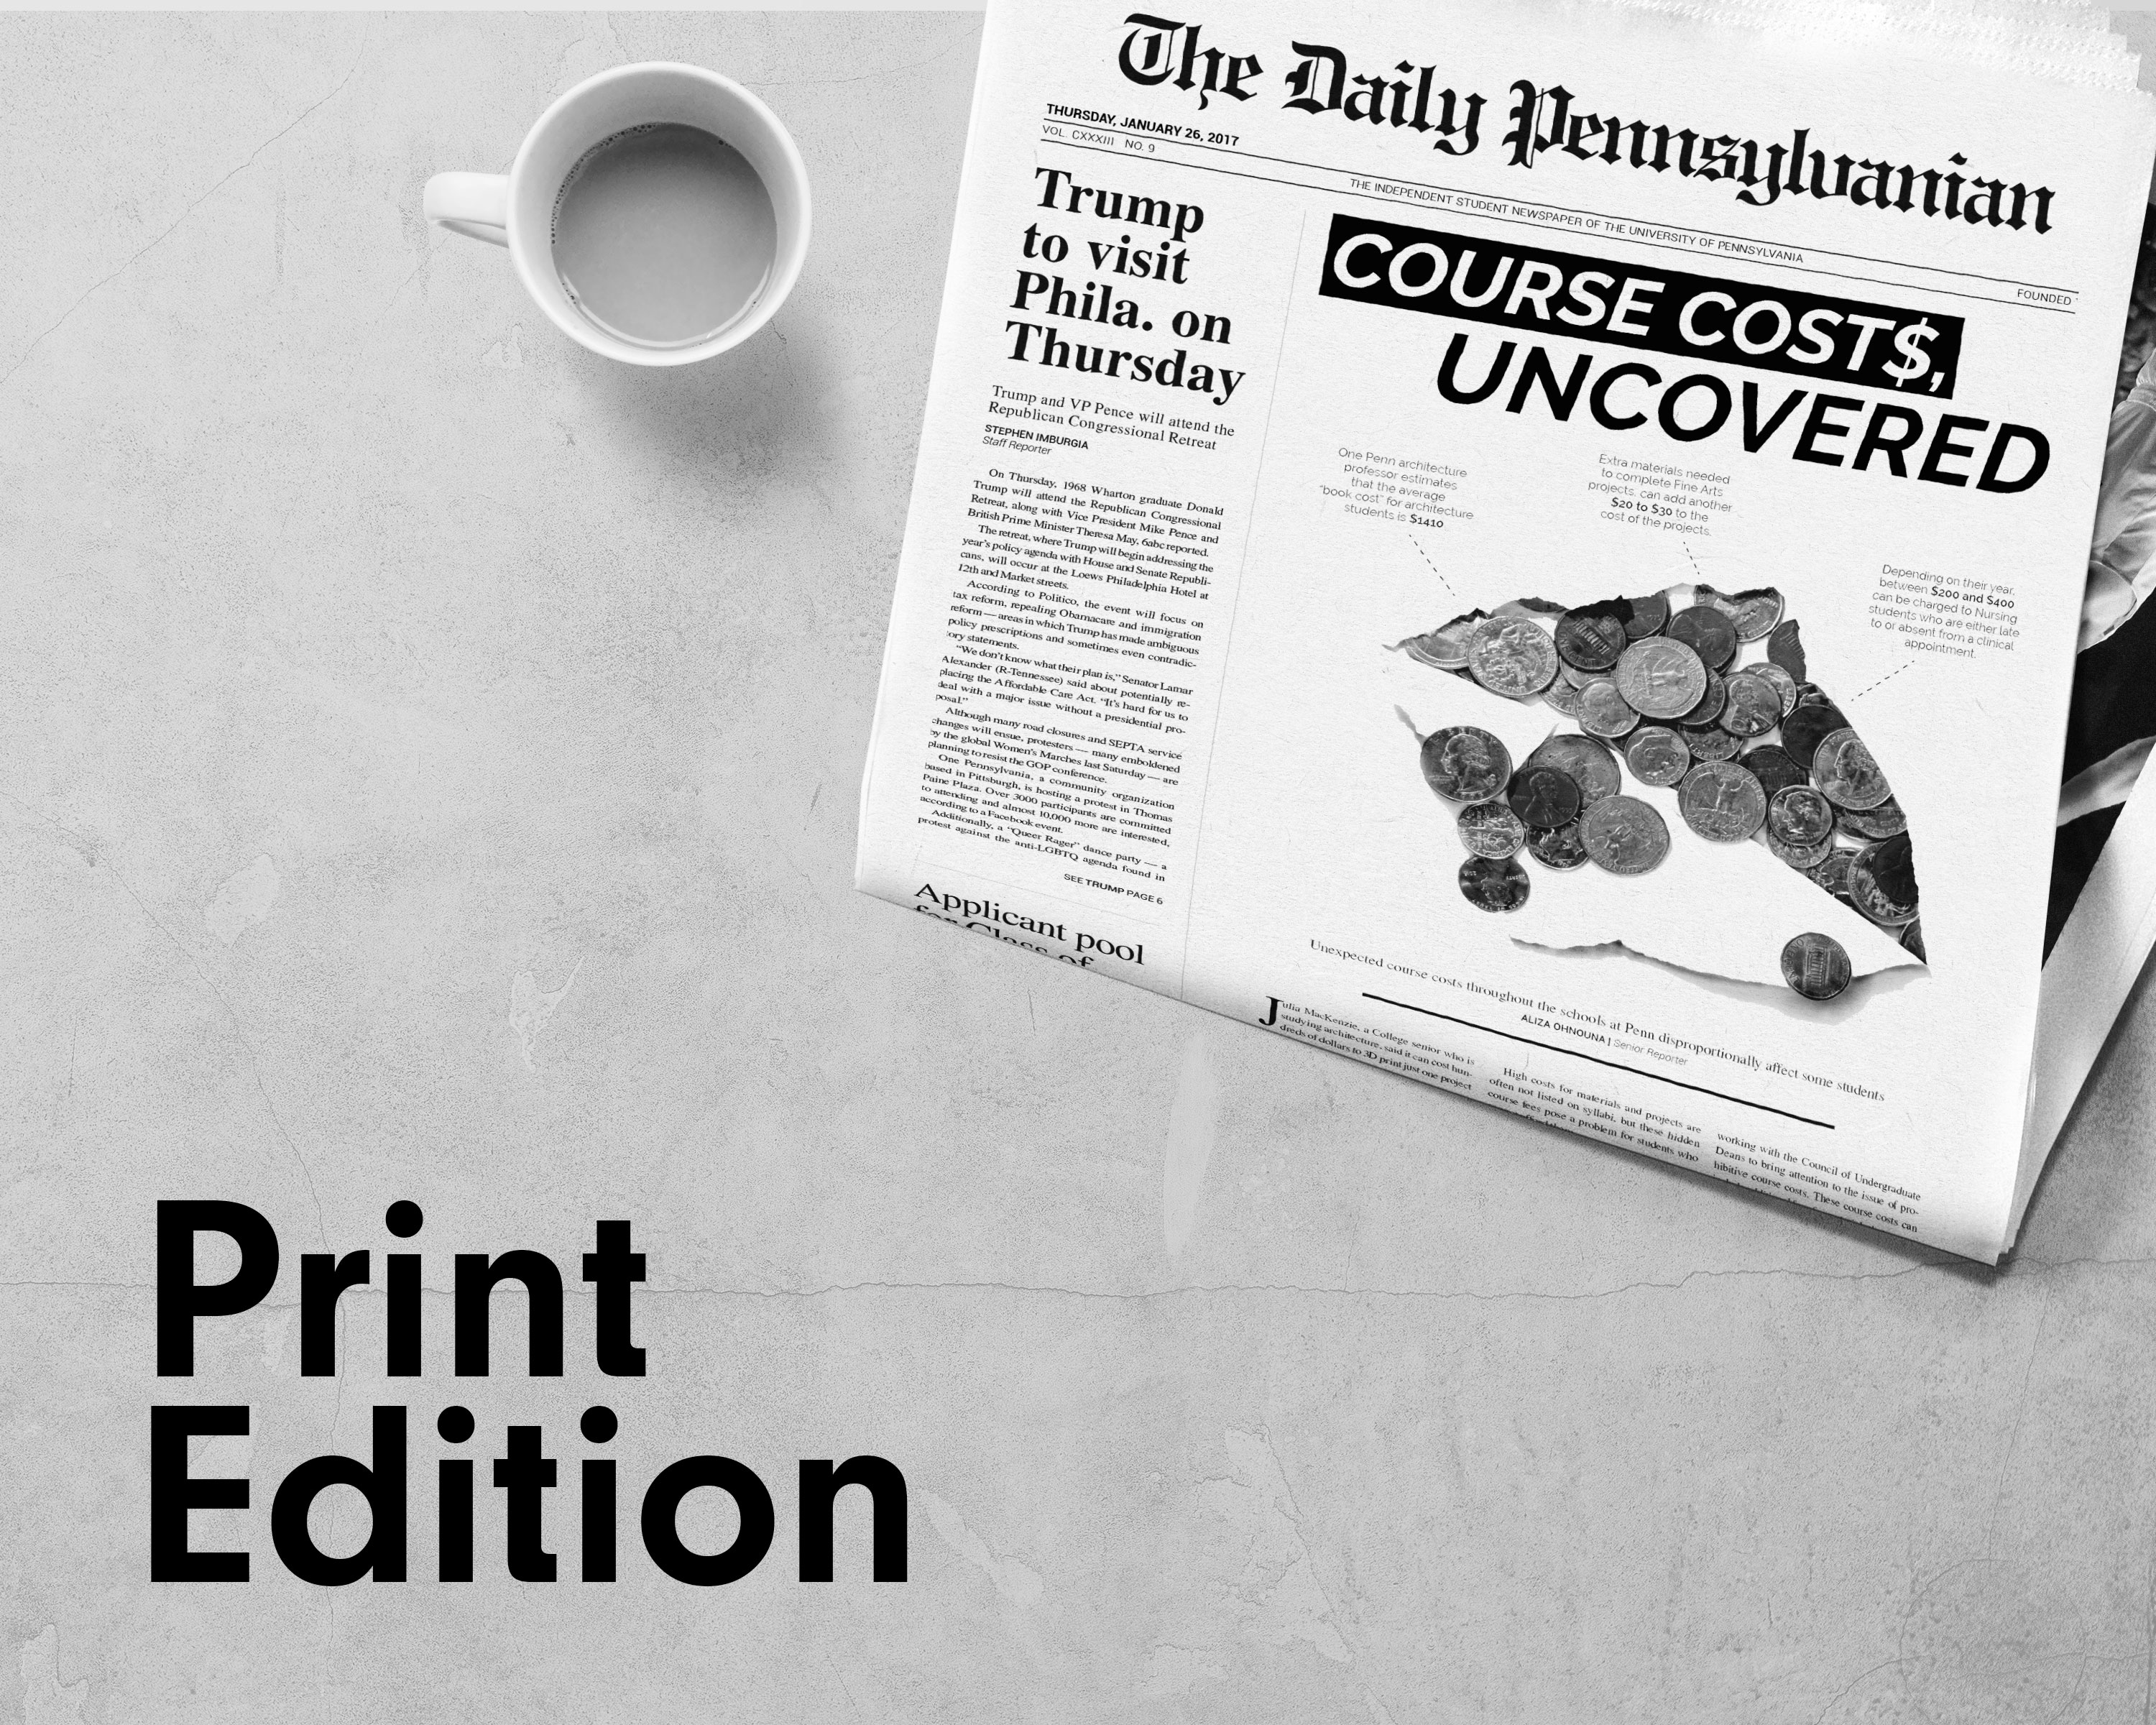 print edition of the daily pennsylvanian